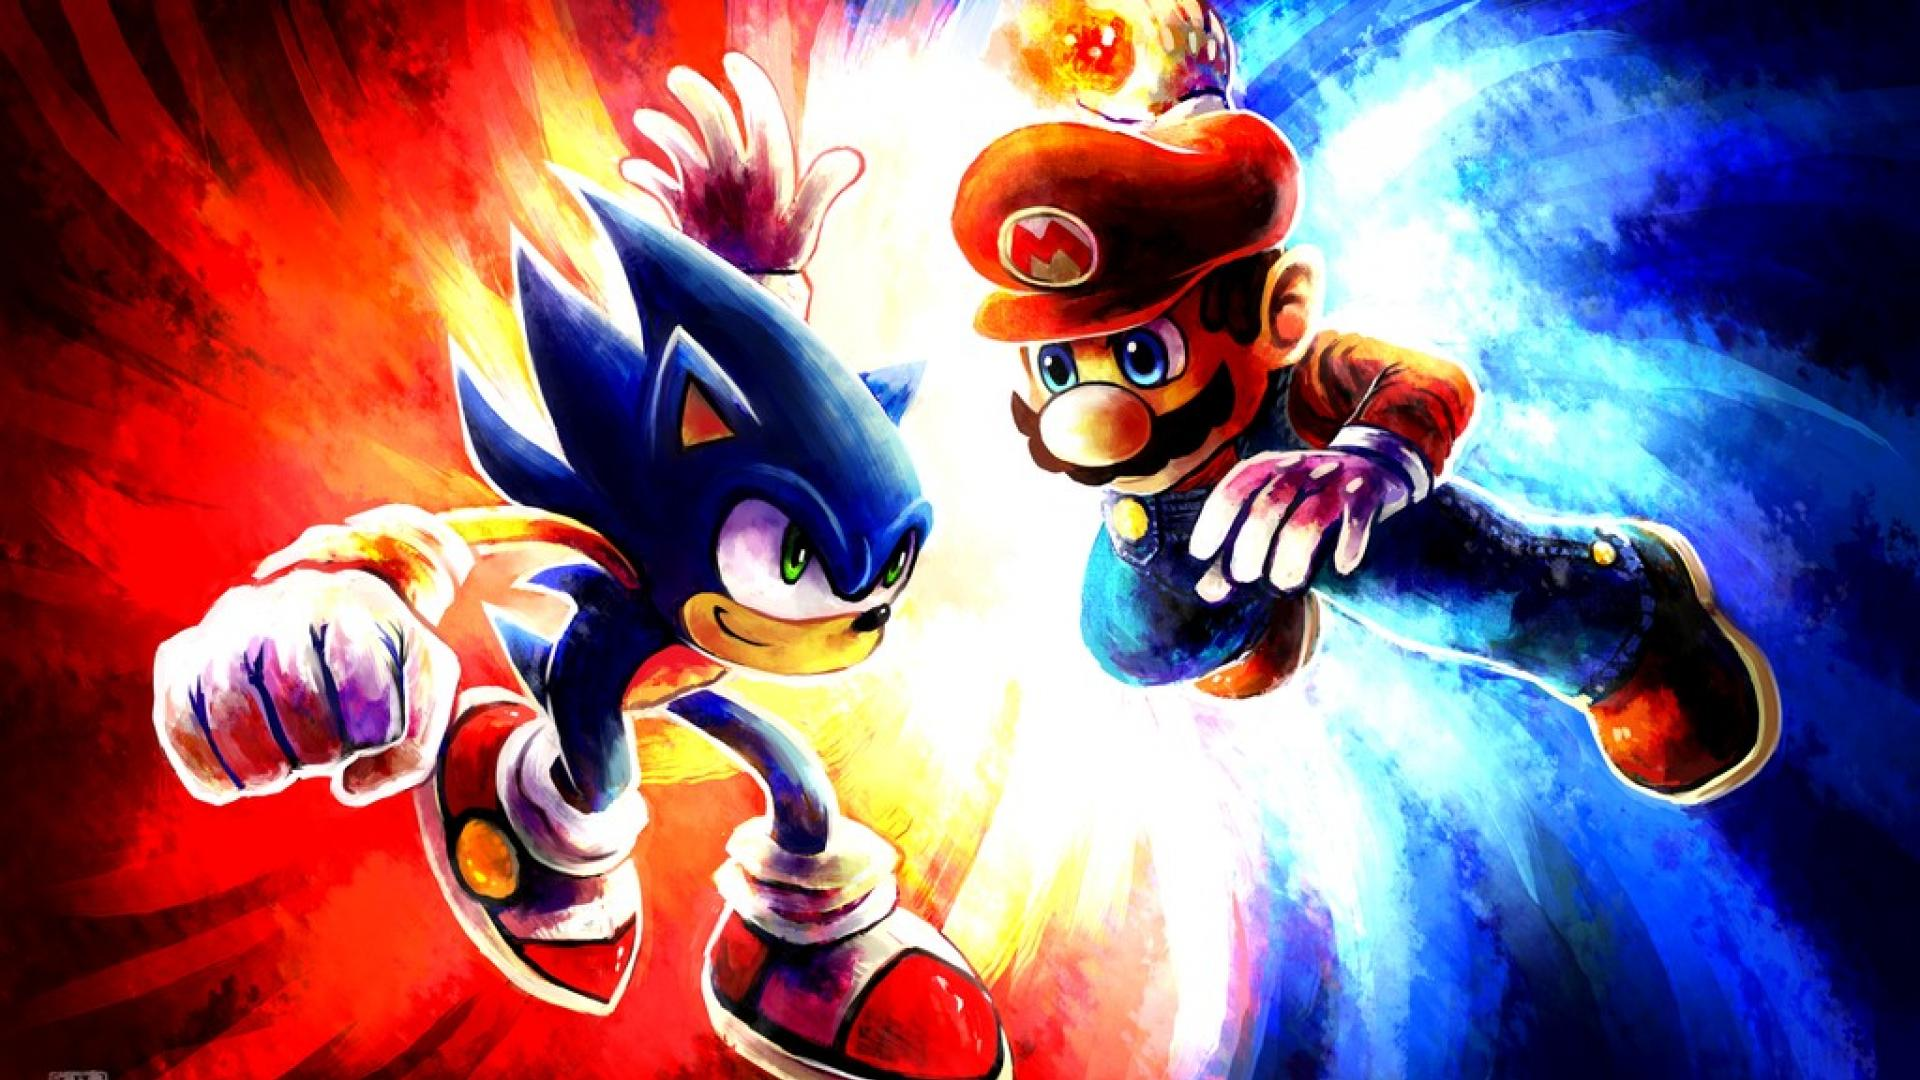 Cool Sonic Wallpapers - Top Free Cool Sonic Backgrounds ...